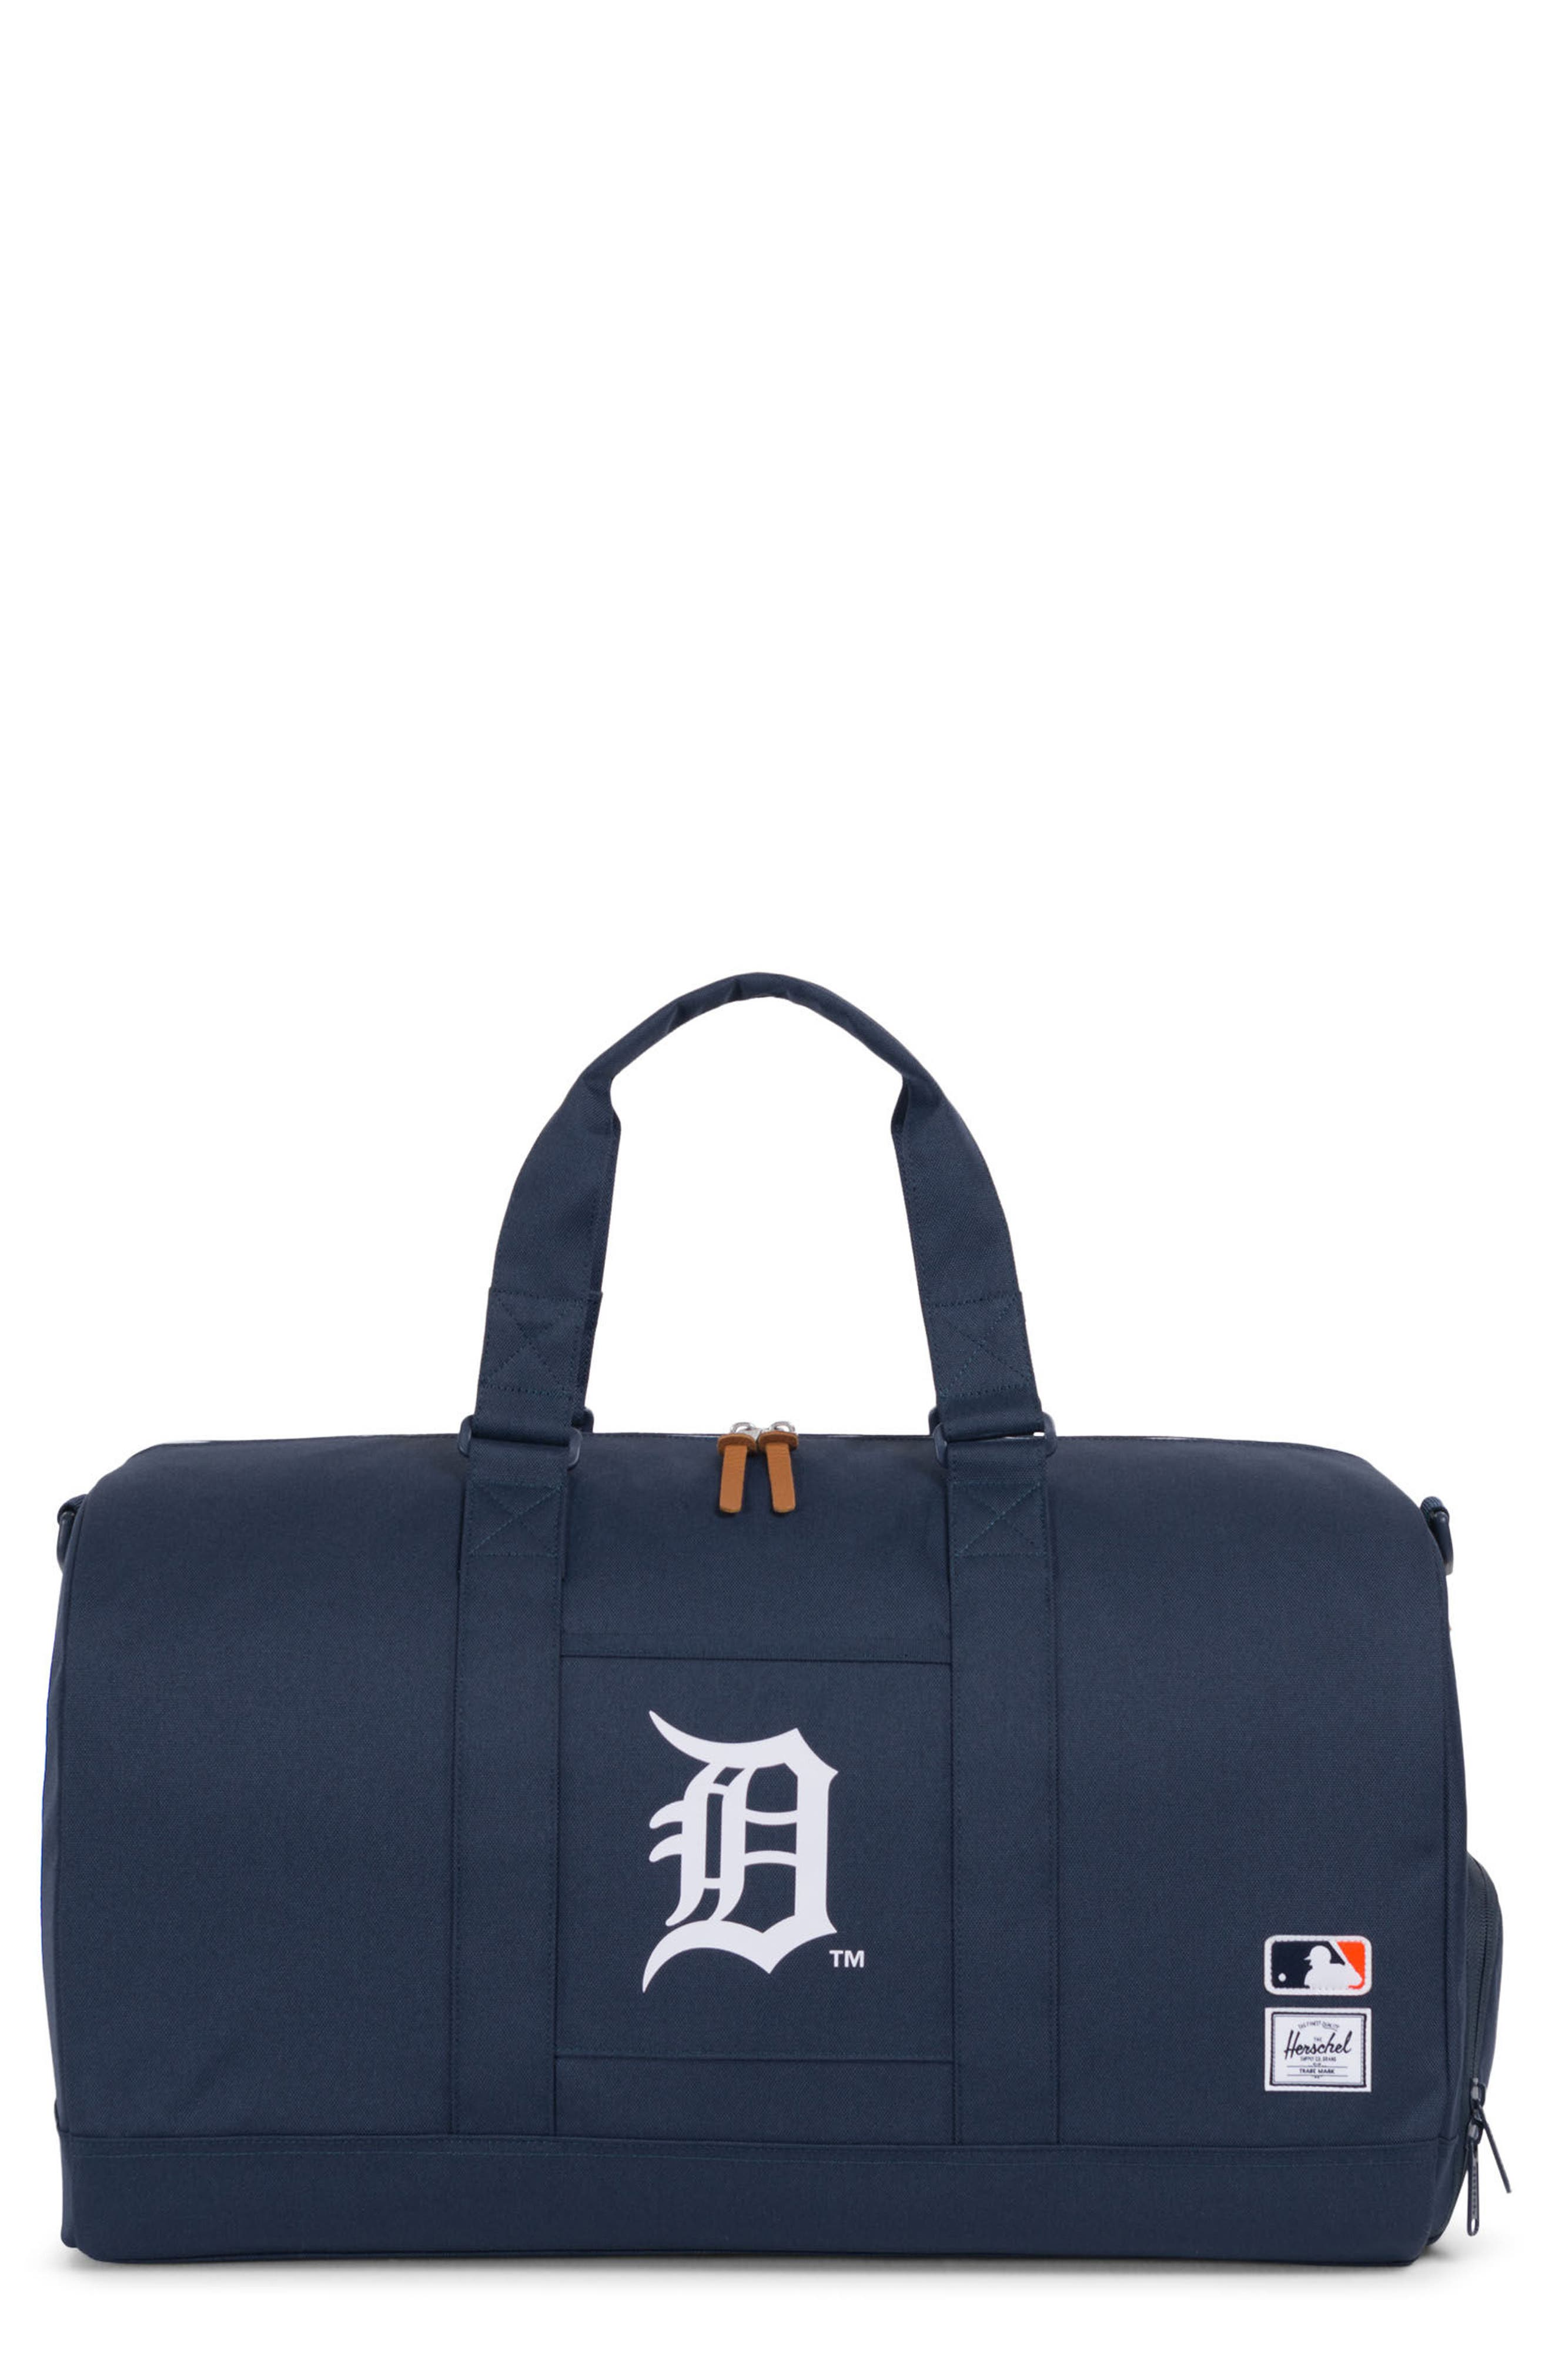 Novel - MLB American League Duffel Bag,                             Main thumbnail 1, color,                             Detroit Tigers